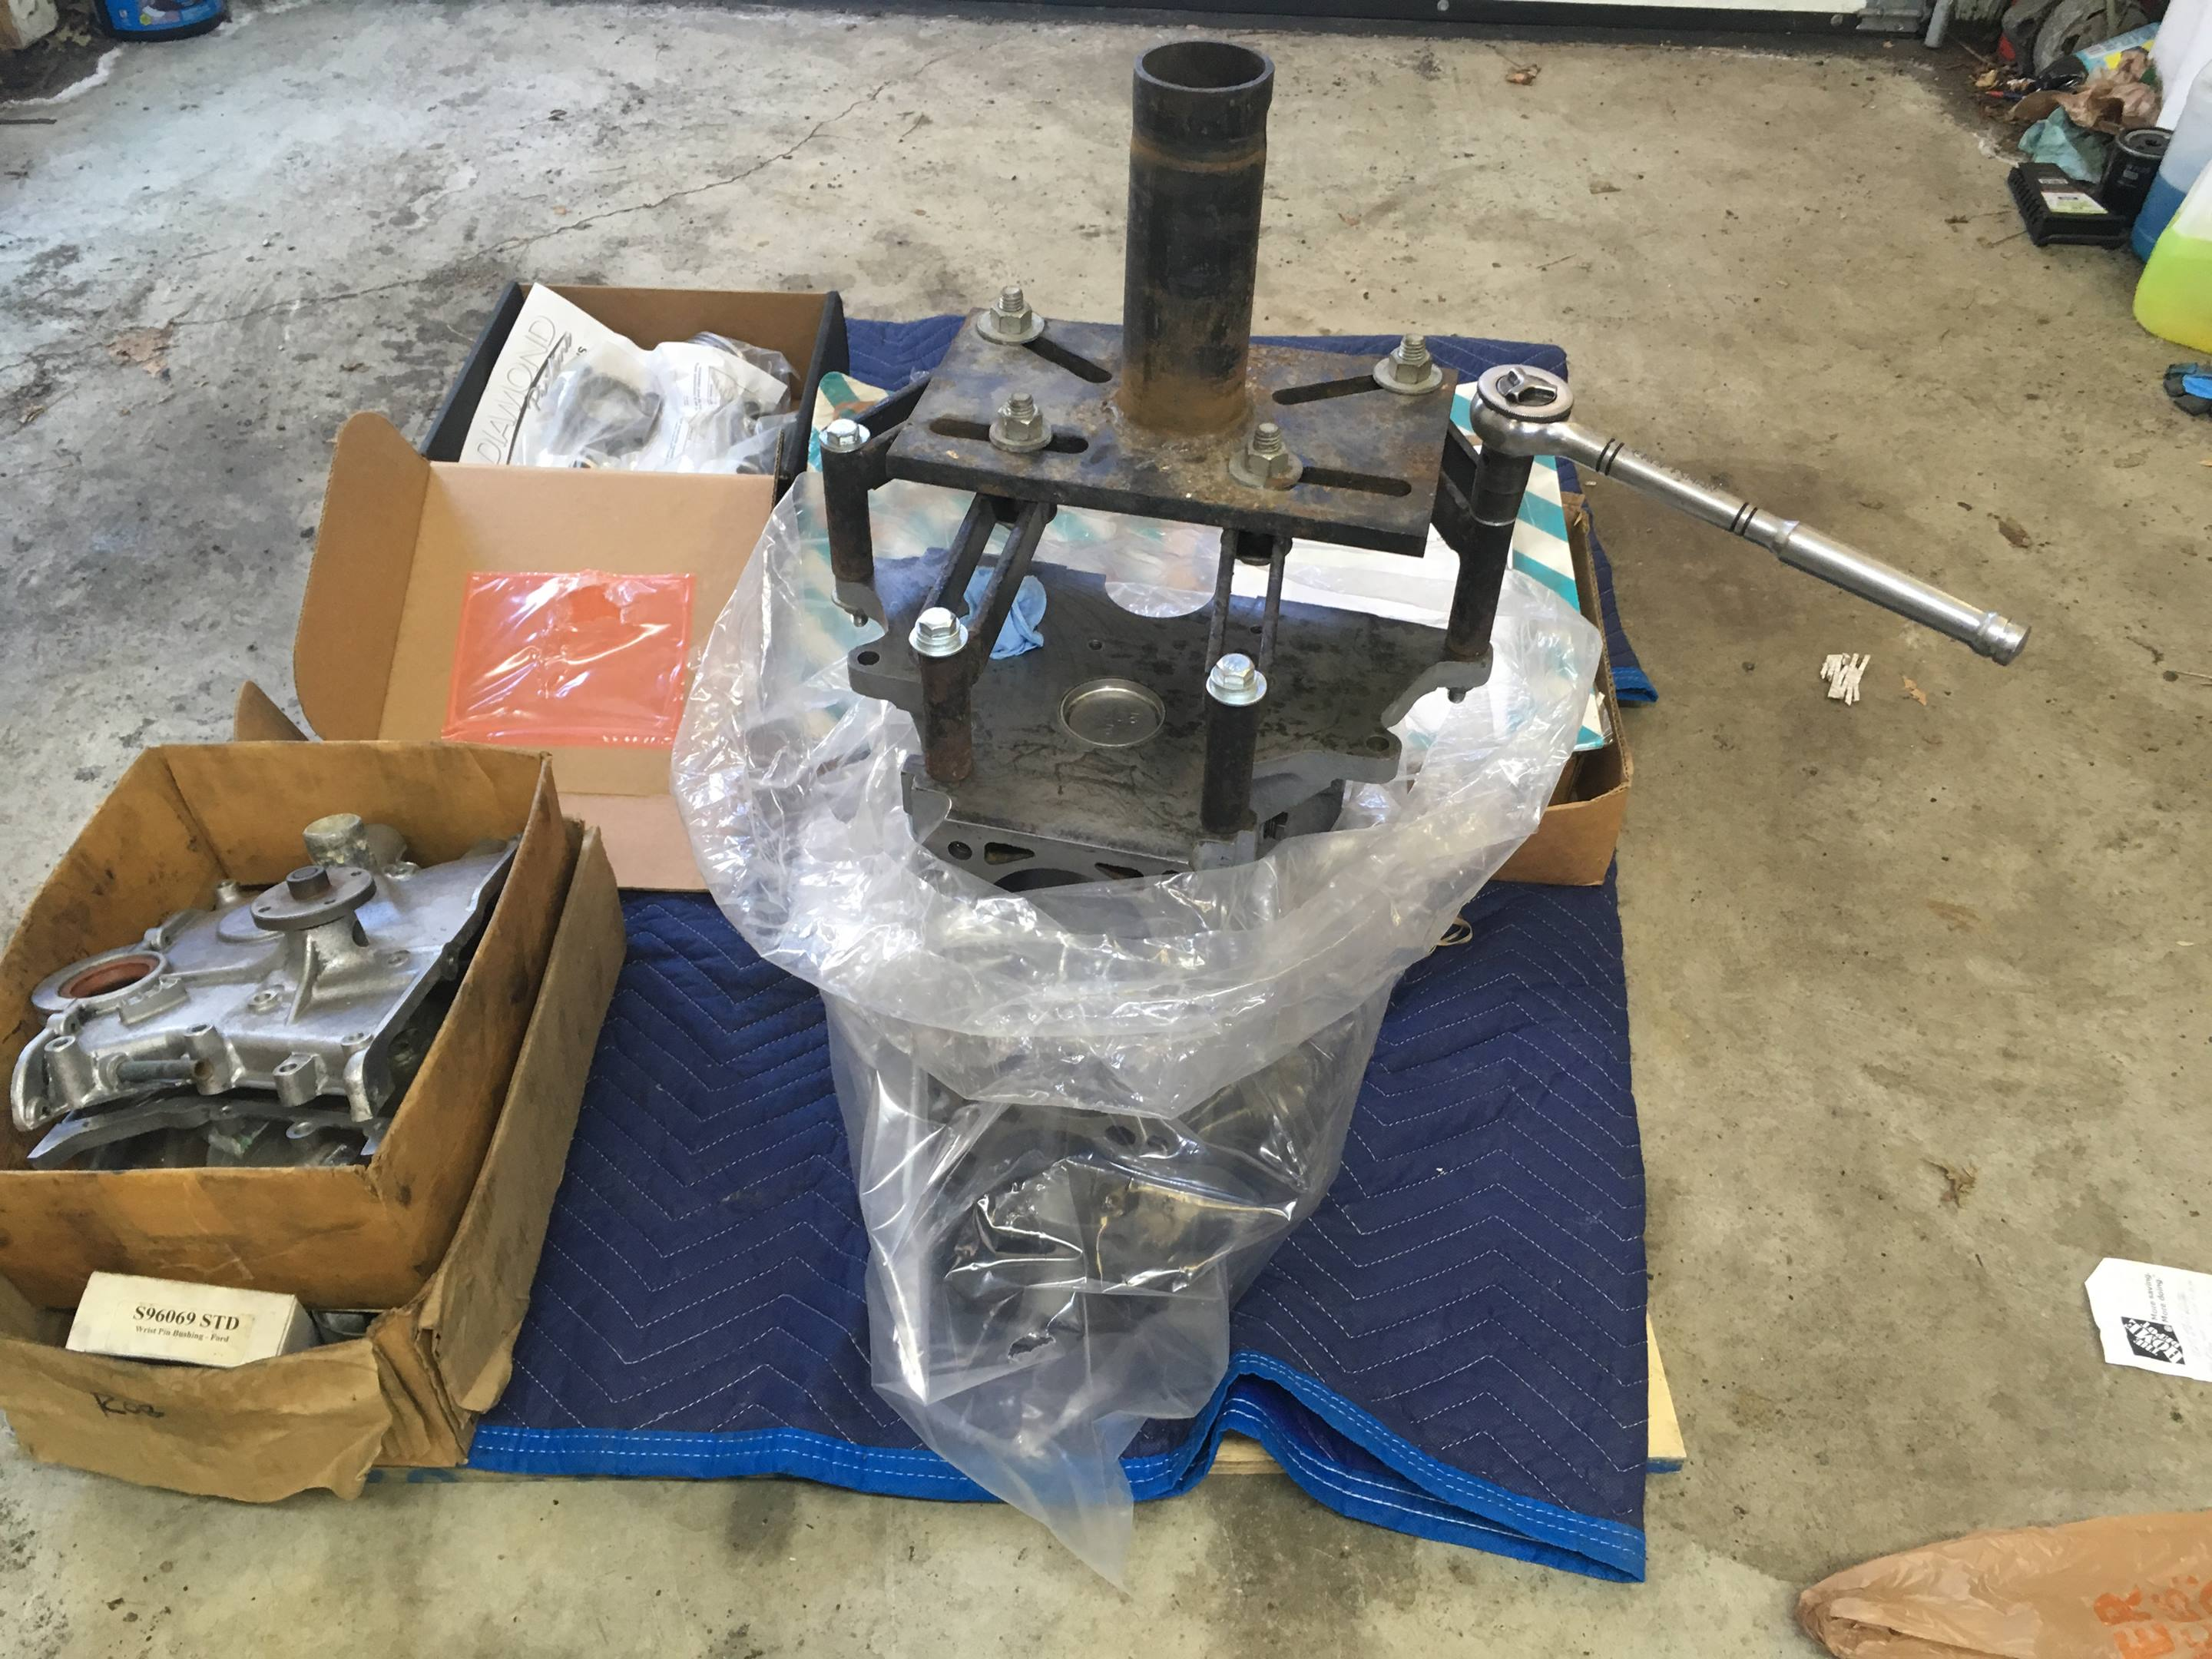 Attaching the engine stand's rotating flange to the block.